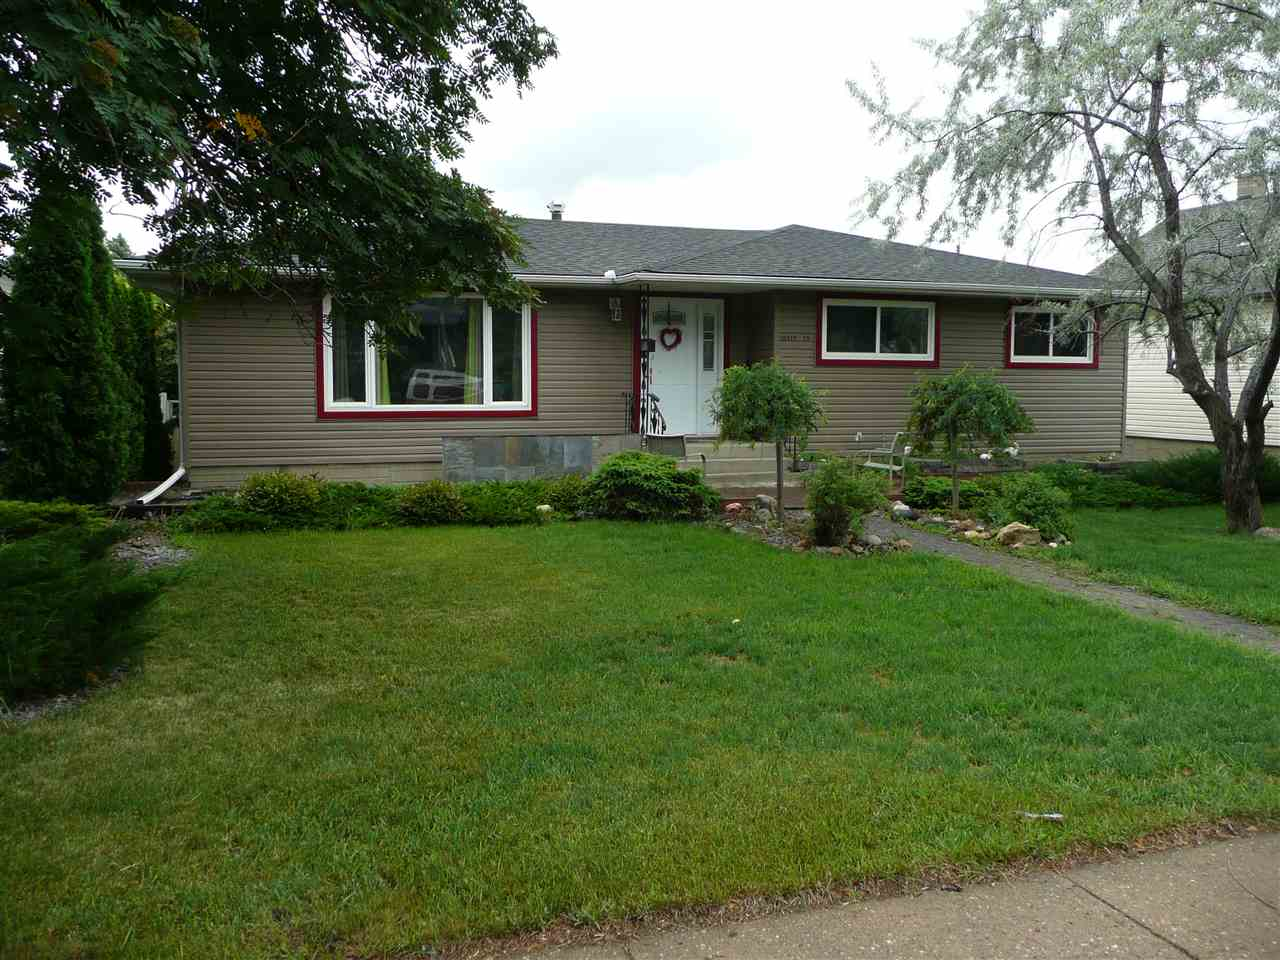 This renovated 3 plus 2 bedroom bungalow is only 5 minutes from downtown and close to all amenities. Recent upgrades in 2013 include new roof, siding, windows, bathrooms, flooring, landscaping and fresh paint. These larger bungalows are rare and having the walkout basement with separate entrance even rarer. There was a suite prior to this owner. Harwood floors on main floor and master bedroom has a 3 piece bath. Property is in excellent condition and move in ready and could be a great spot for a home business with the huge finished basement. There are 2 large bedrooms on lower level and a bonus room where kitchen was located. This lot would can be subdivided for 2 single family homes or an oversized duplex. The lot is 60'x115'. There are many new homes in the area and has great long term potential for an investor with an eye to the future. Large east facing backyard with huge deck and double garage.